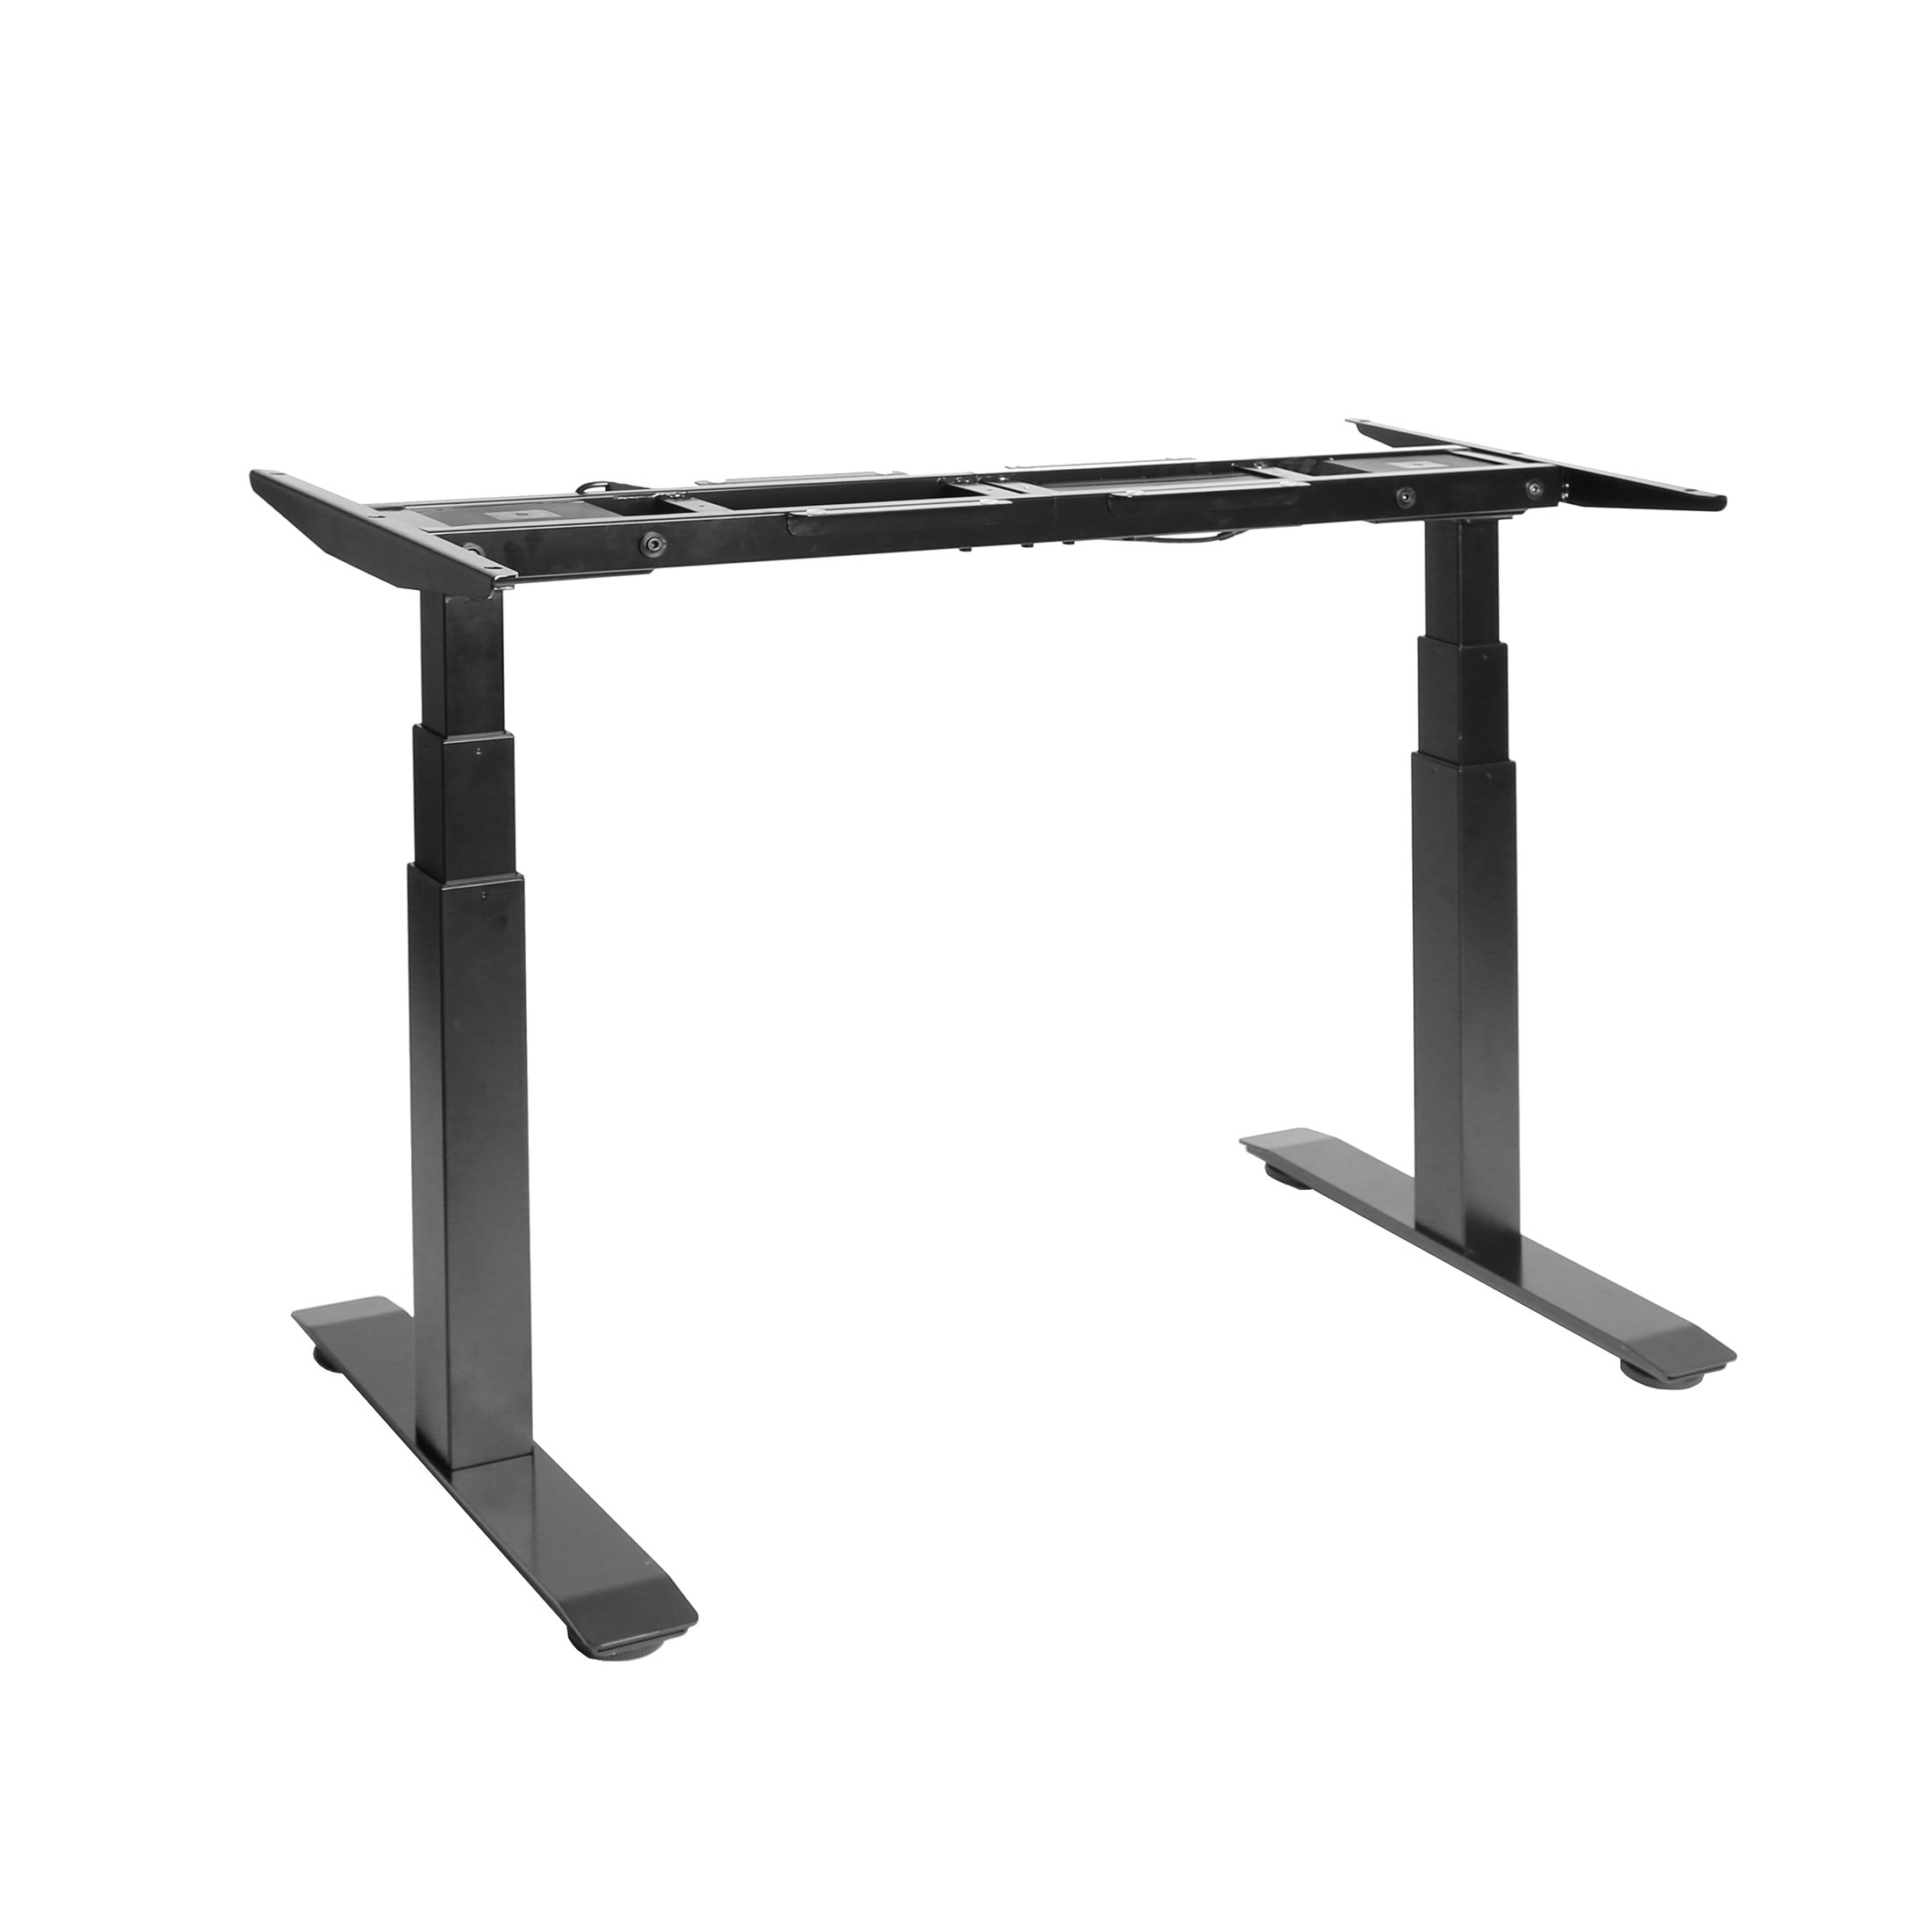 Seville Classics AIRLIFT S3 Electric Standing Desk Frame (Max. Height 50.4'') /w 4 Memory Buttons LED Height Display - Base Only, Extends 45'' to 62.9'' W, 3-Section Base, Dual Motors, Black